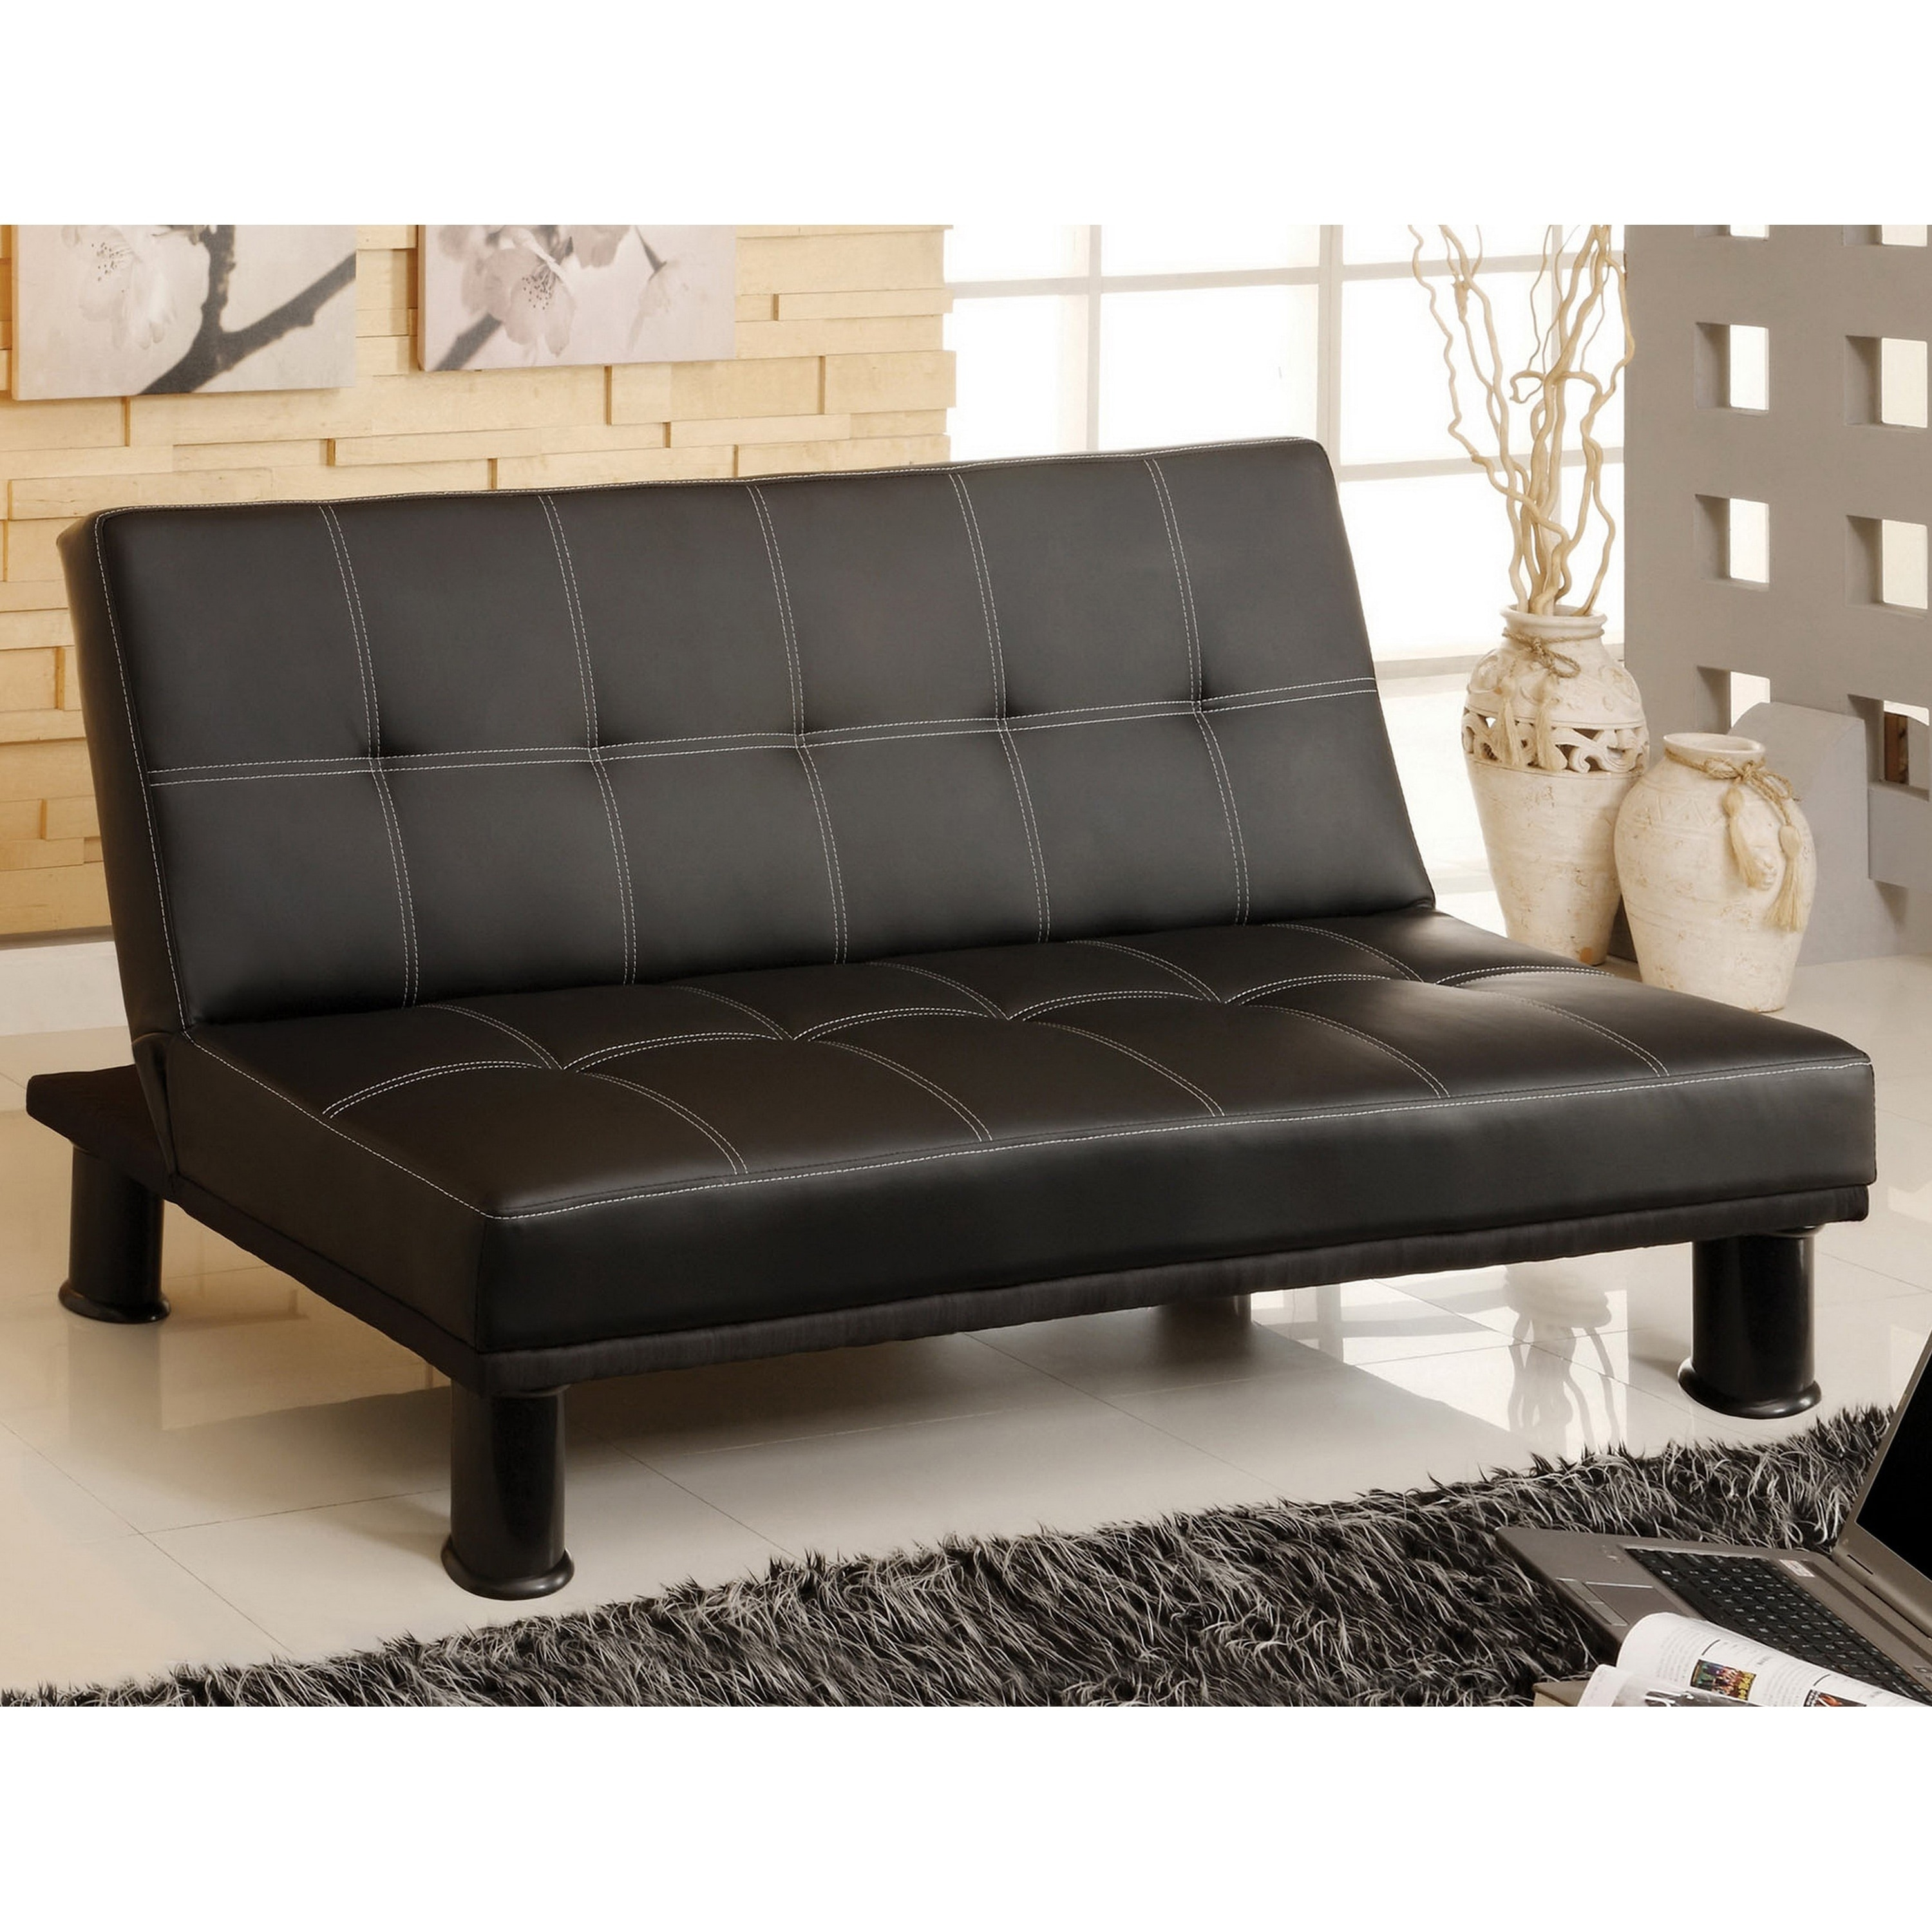 Stupendous Furniture Of America Zova Contemporary Black Faux Leather Futon Sofa Short Links Chair Design For Home Short Linksinfo